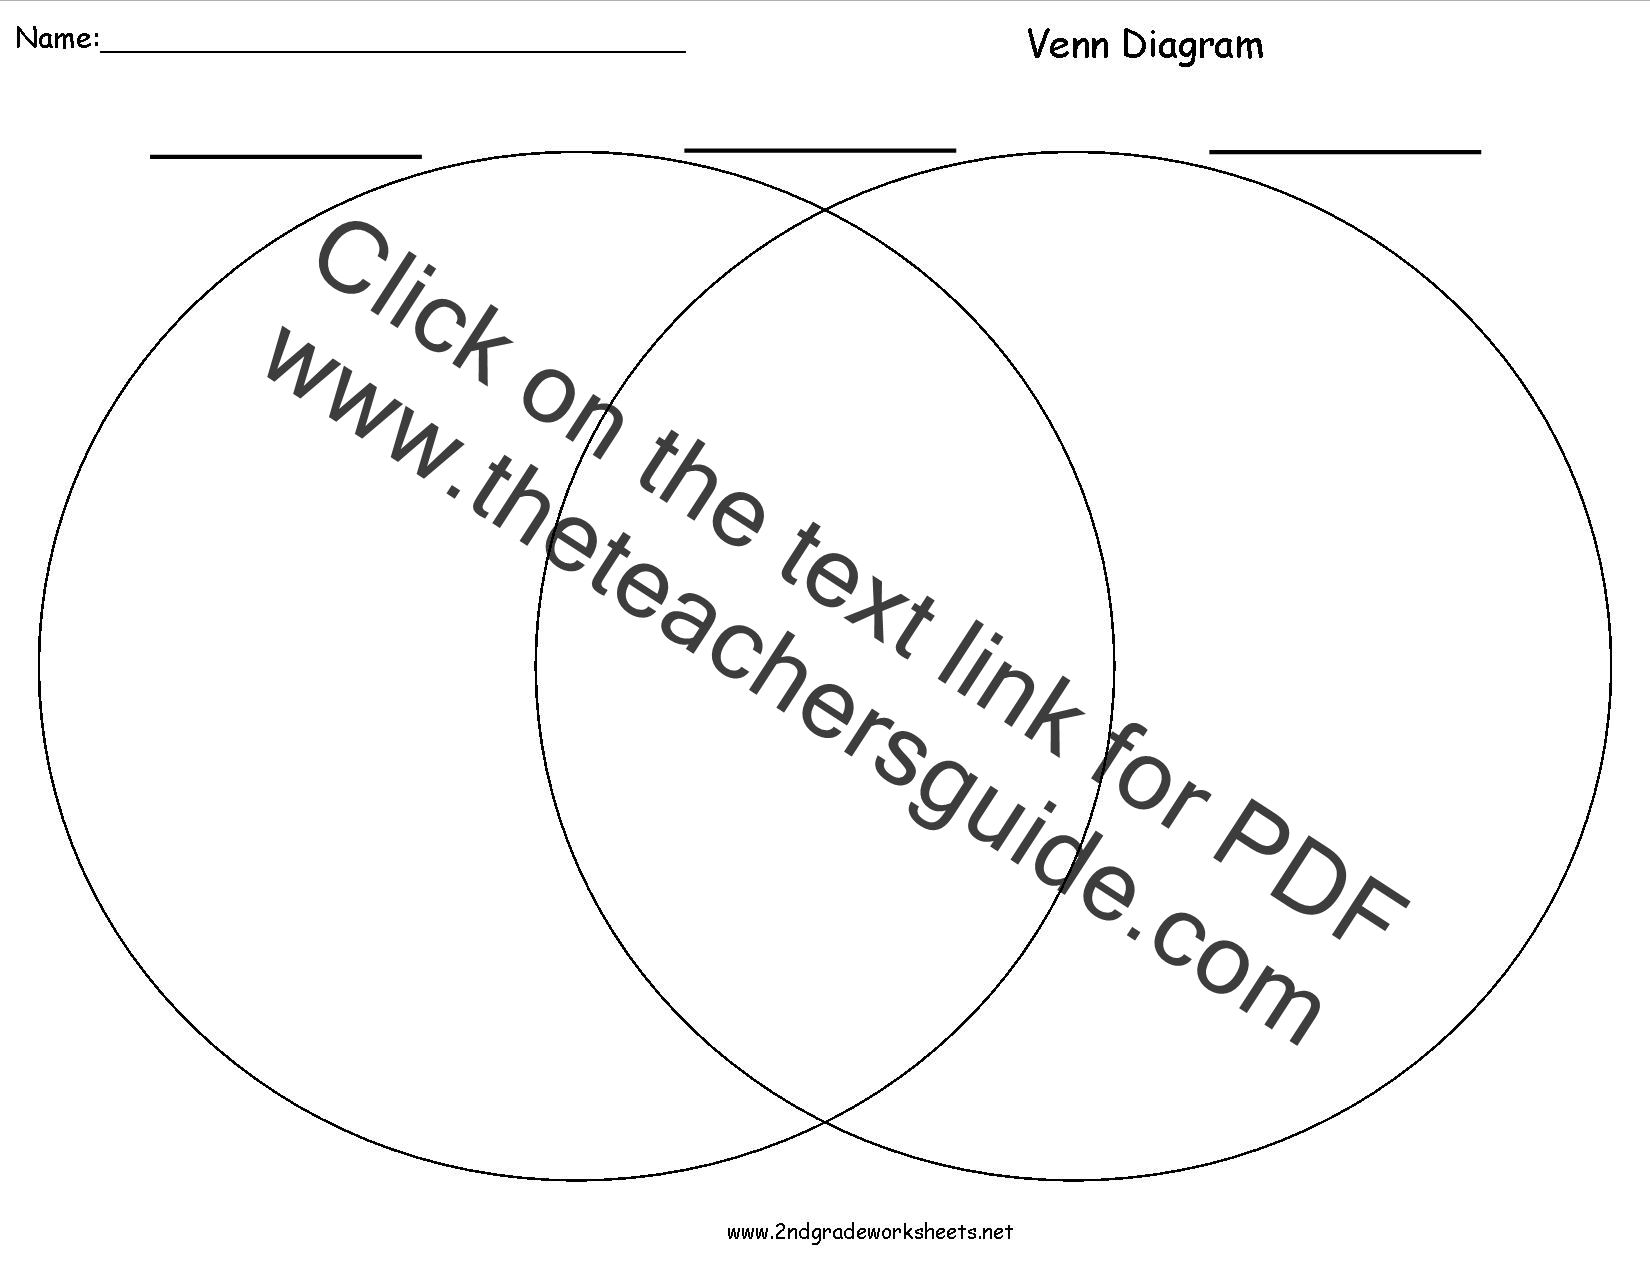 Printables Venn Diagram Worksheet venn diagram worksheet davezan diagrams worksheets plustheapp